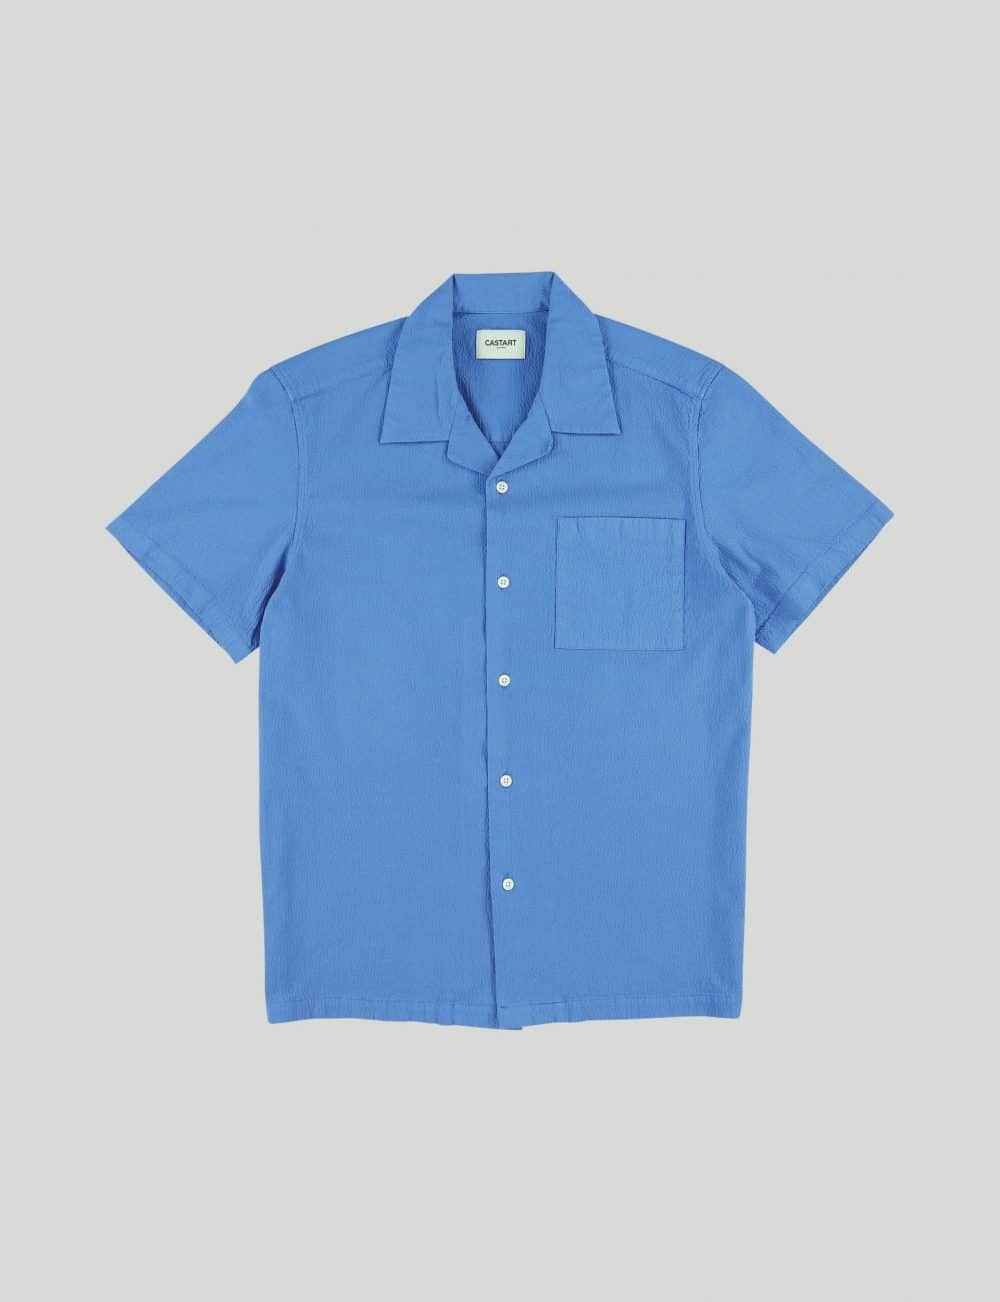 Castart - Tiger Tooth SL Shirt - French Blue